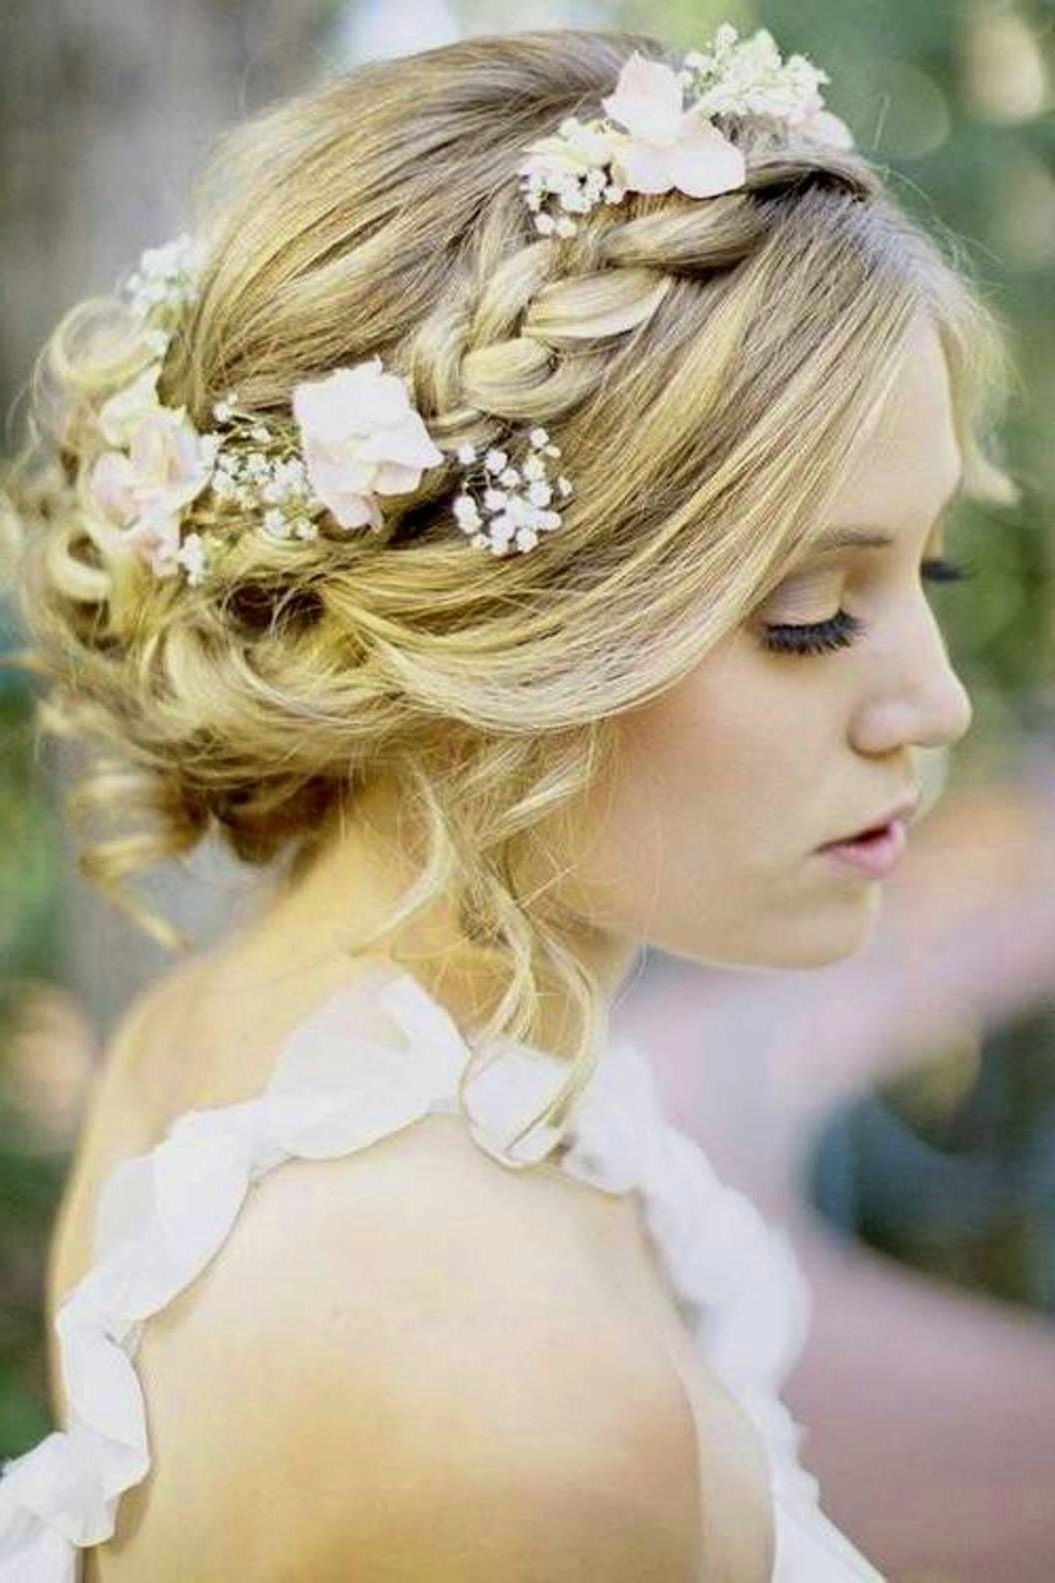 Cute Wedding Hairstyles 21 Gorgeous Half Up Down Babble Cute Wedding Throughout Most Popular Cute Wedding Guest Hairstyles For Short Hair (View 3 of 15)